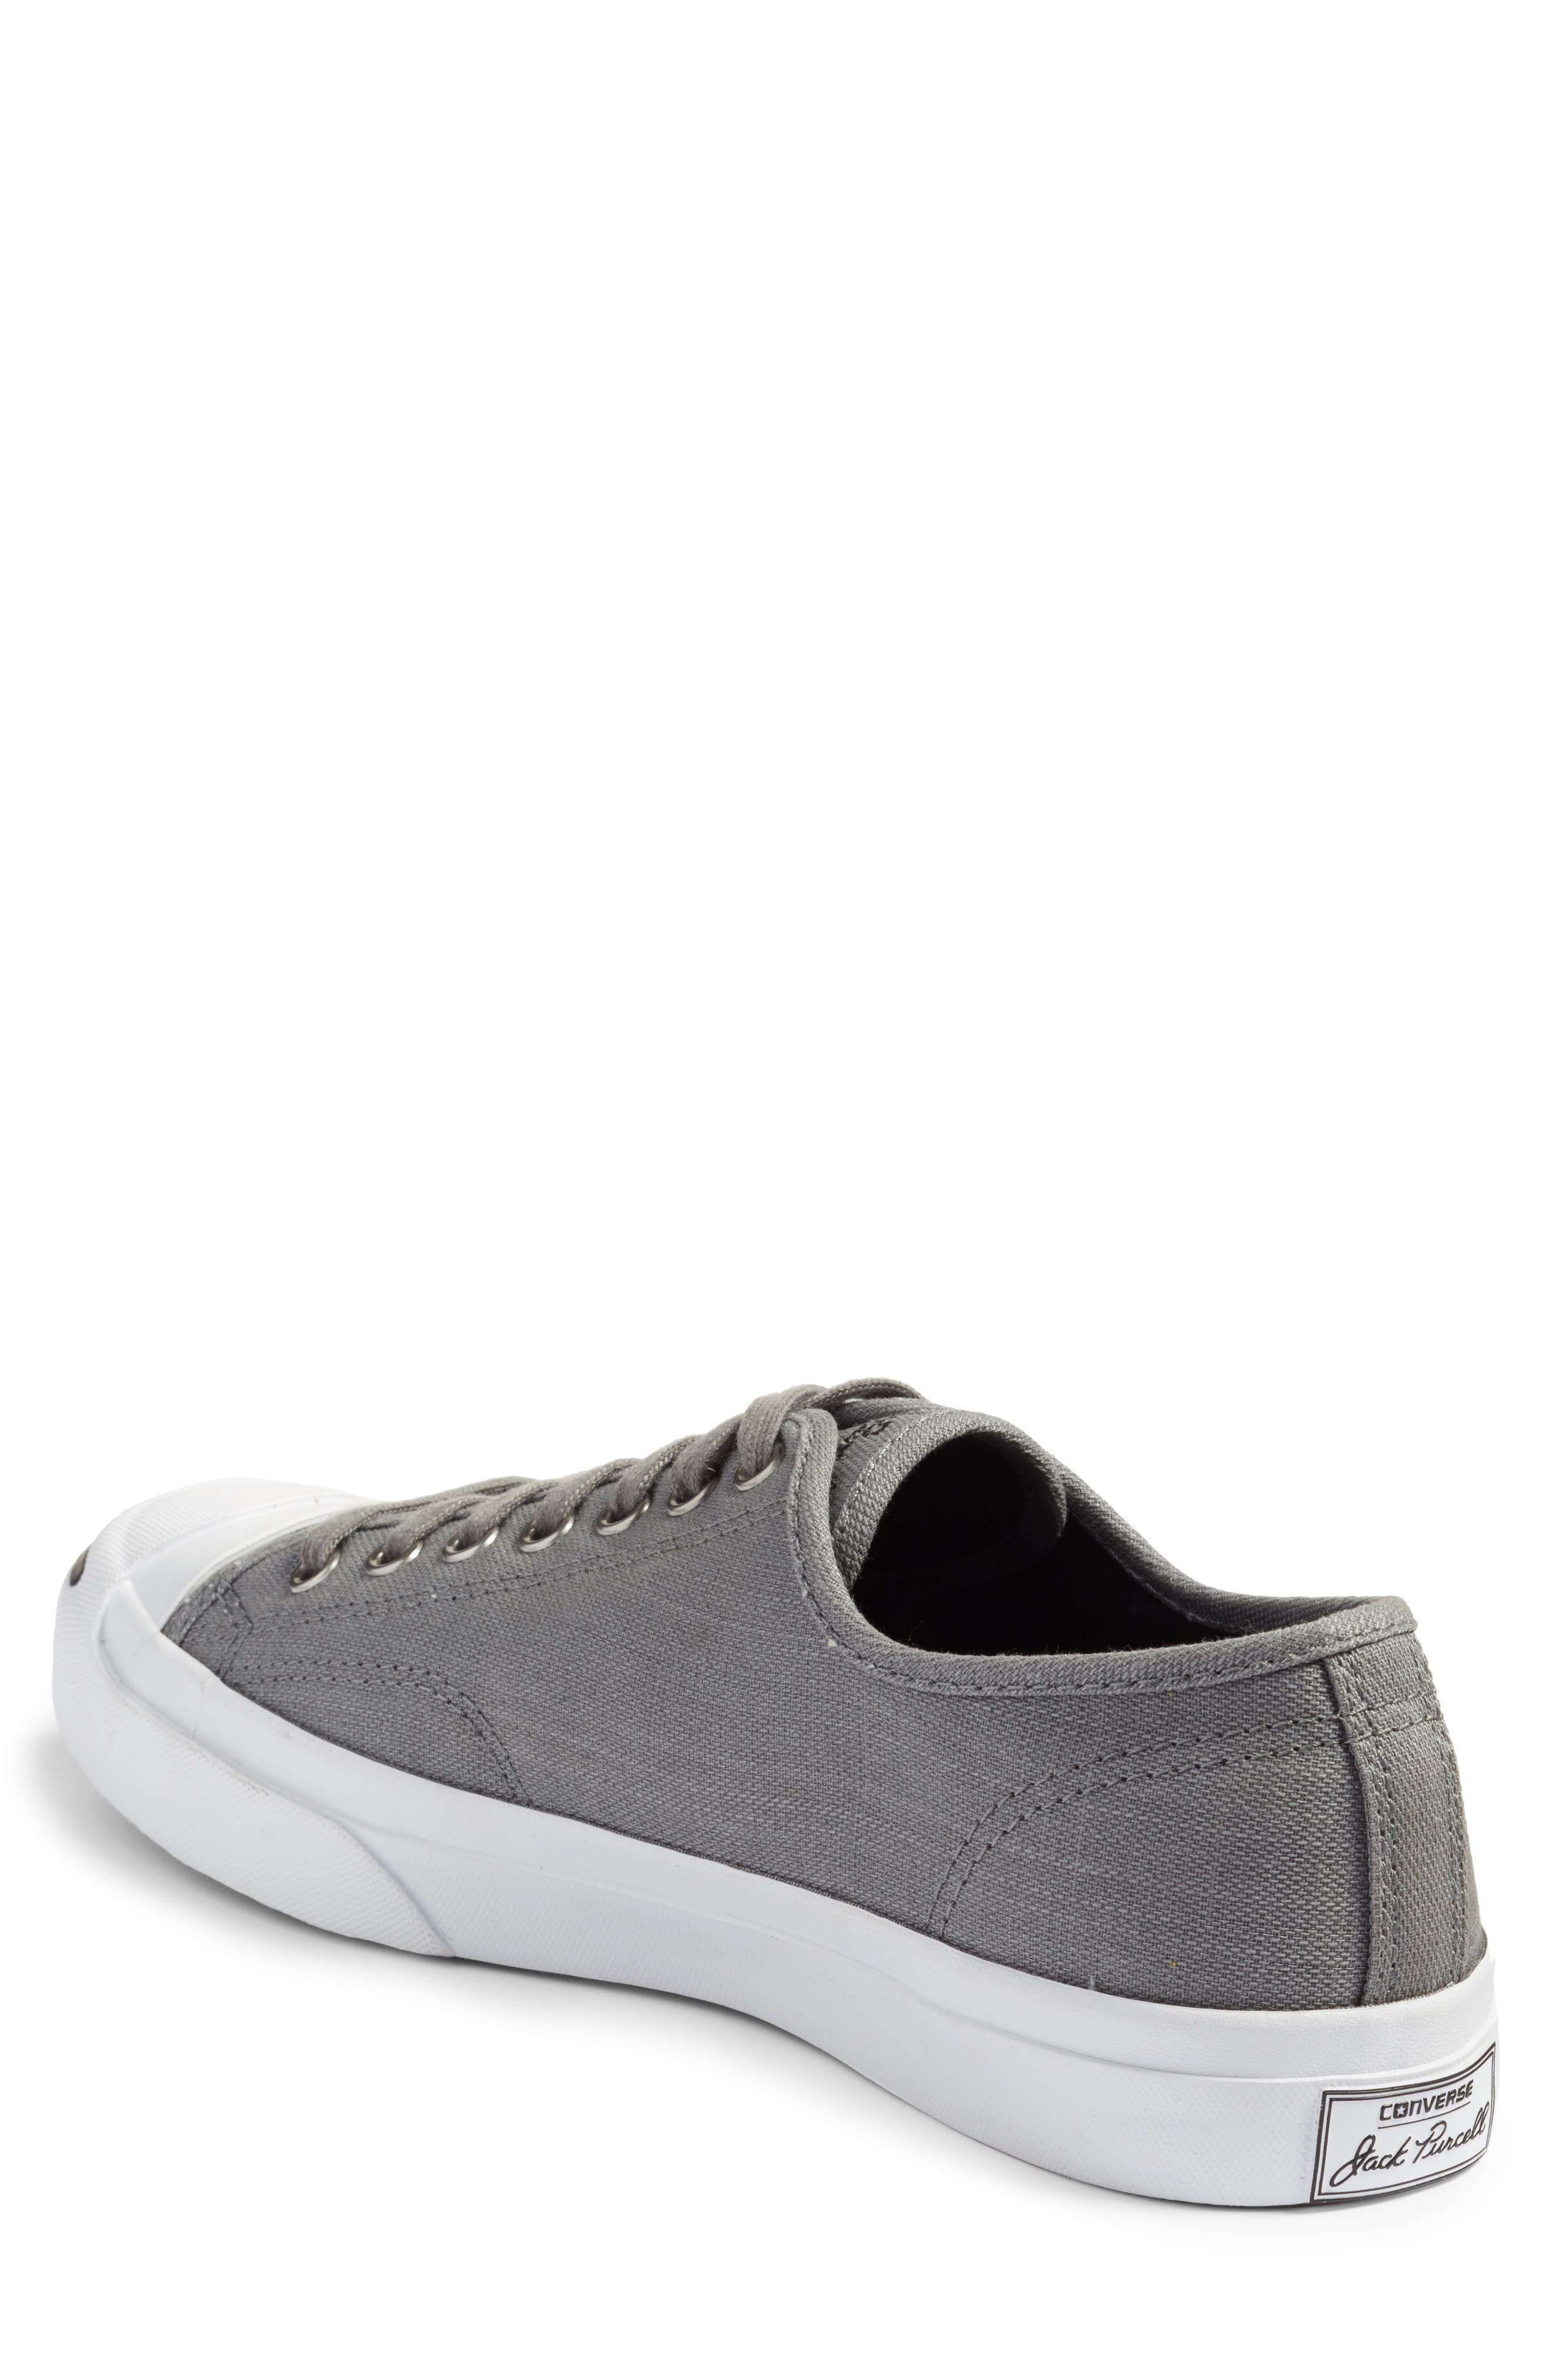 Alternate Image 2  - Converse Jack Purcell Ox Sneaker (Men)